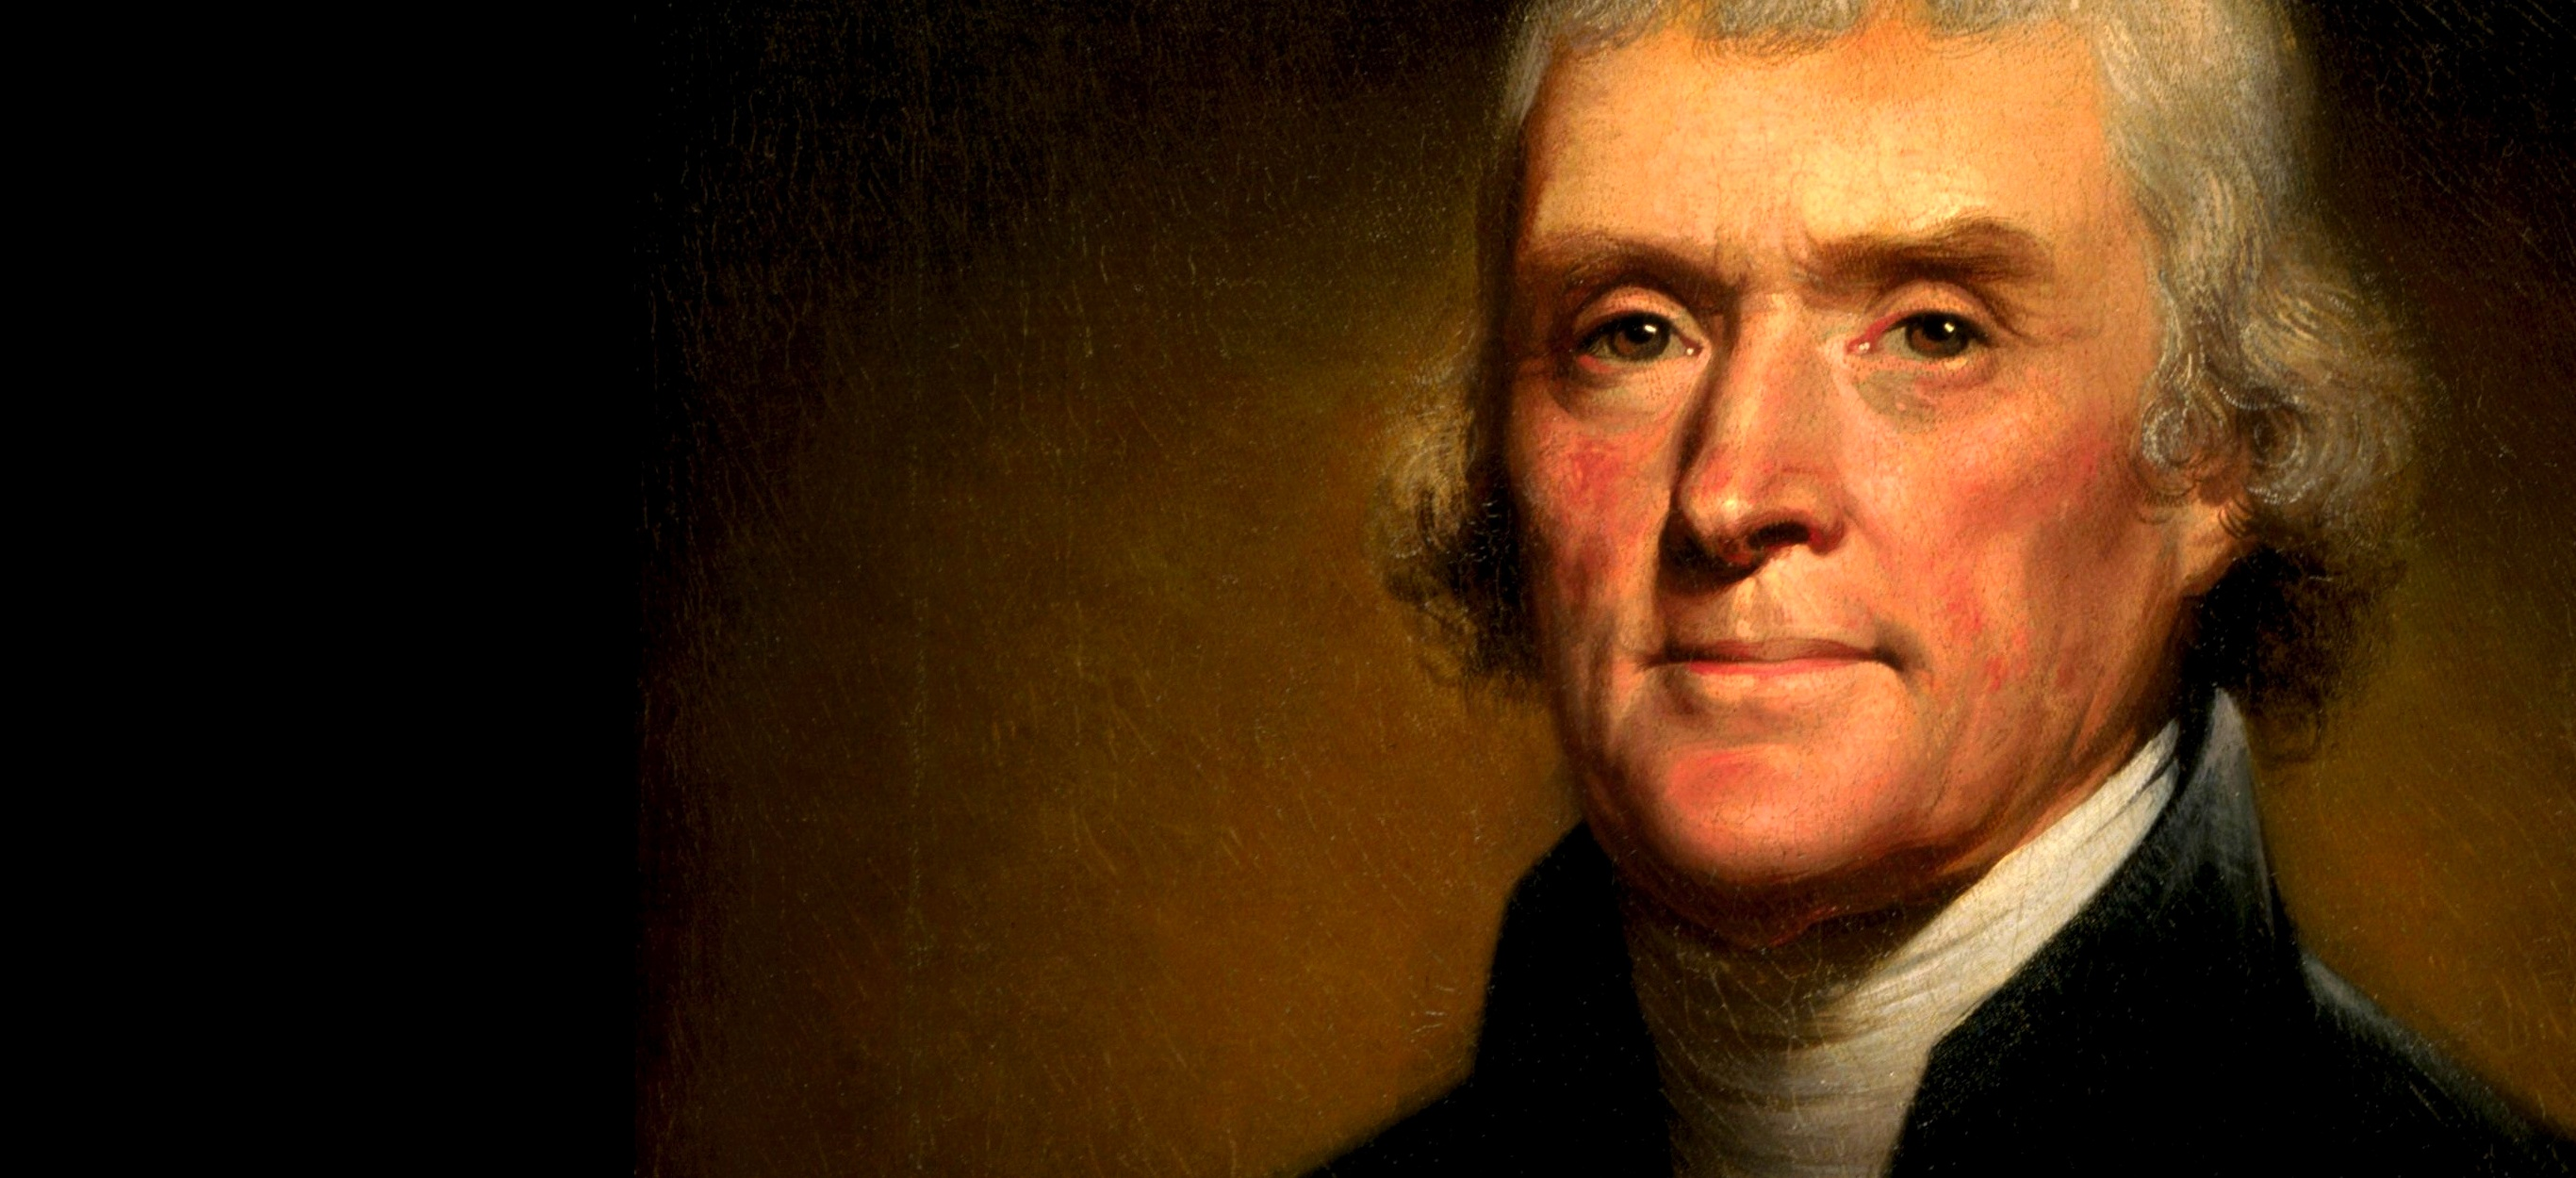 Image: President of university founded by Jefferson asked to not quote Jefferson